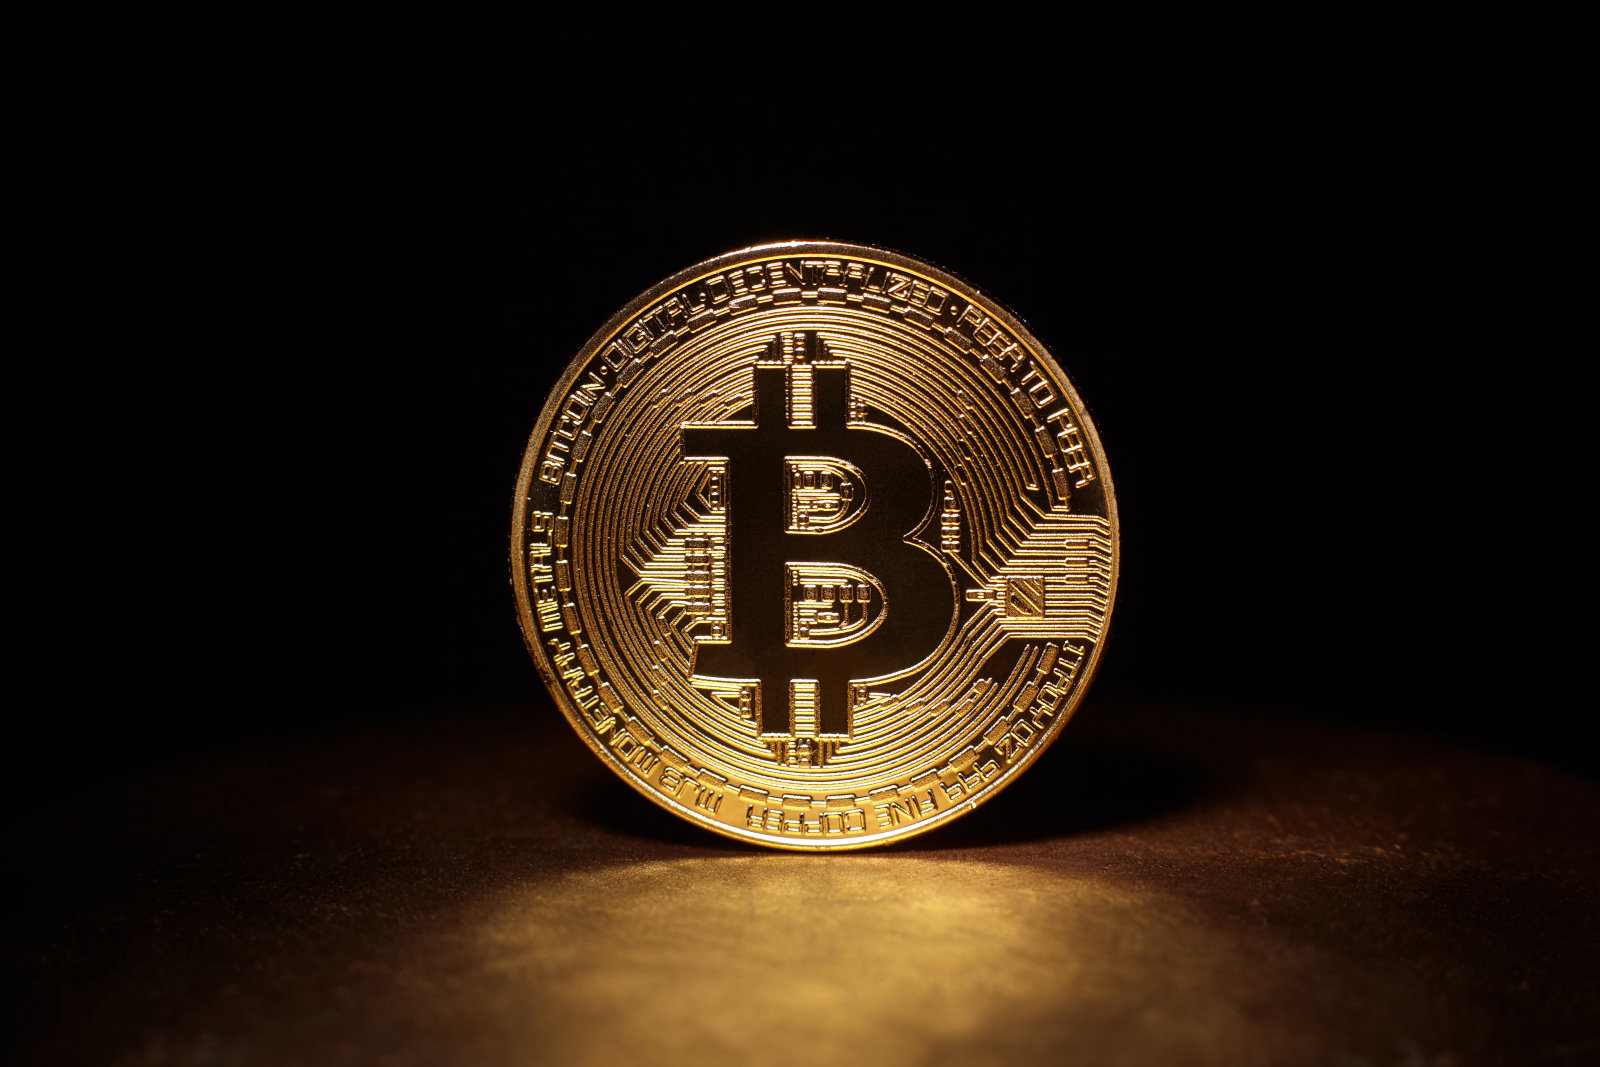 This Pakistani claims to be the founder of Bitcoin